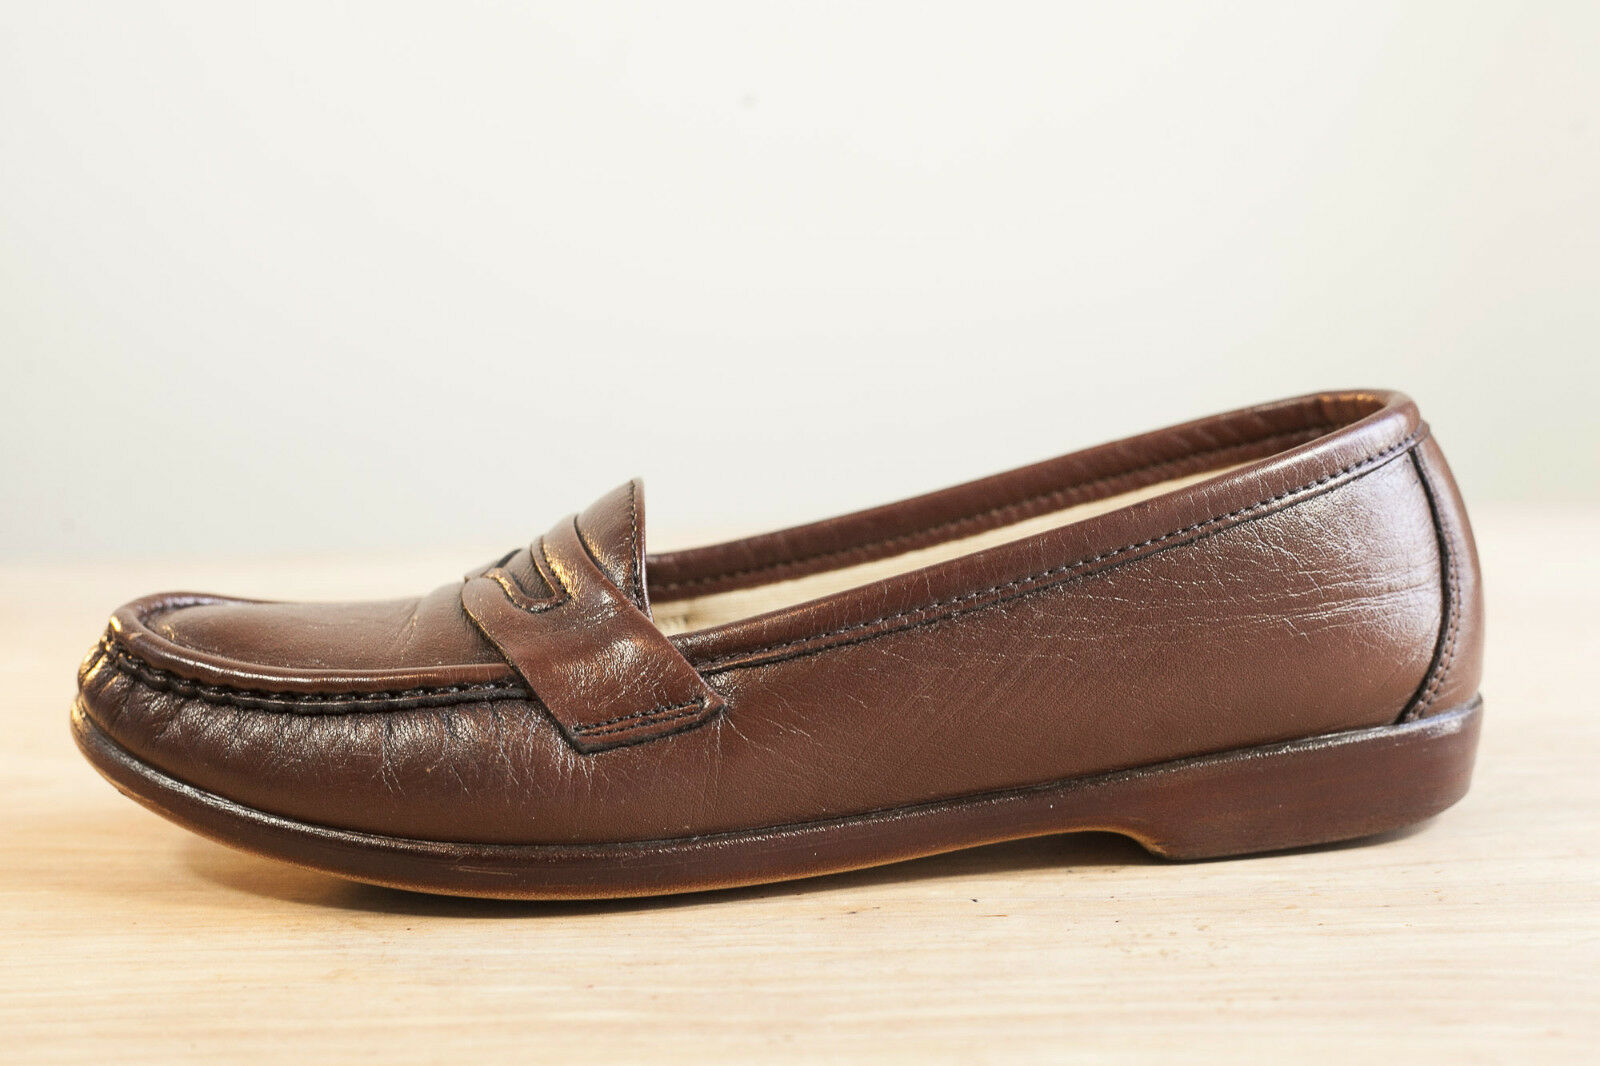 SAS 8 Narrow Brown Slip-On Loafer Women's shoes